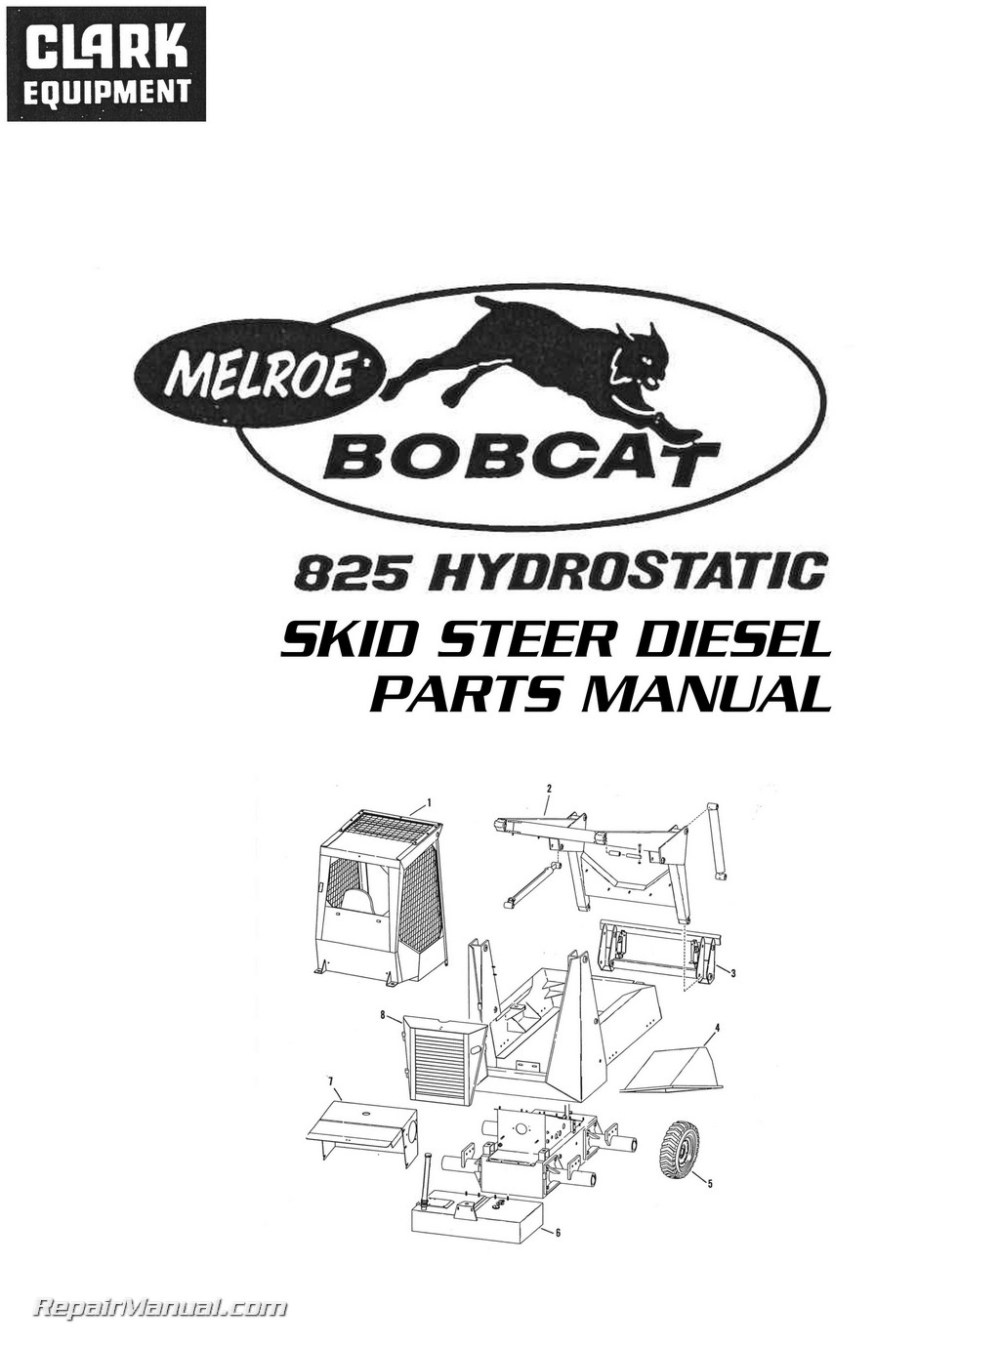 medium resolution of 1024x1378 clark bobcat 825 hydrostatic skid steer diesel parts manual